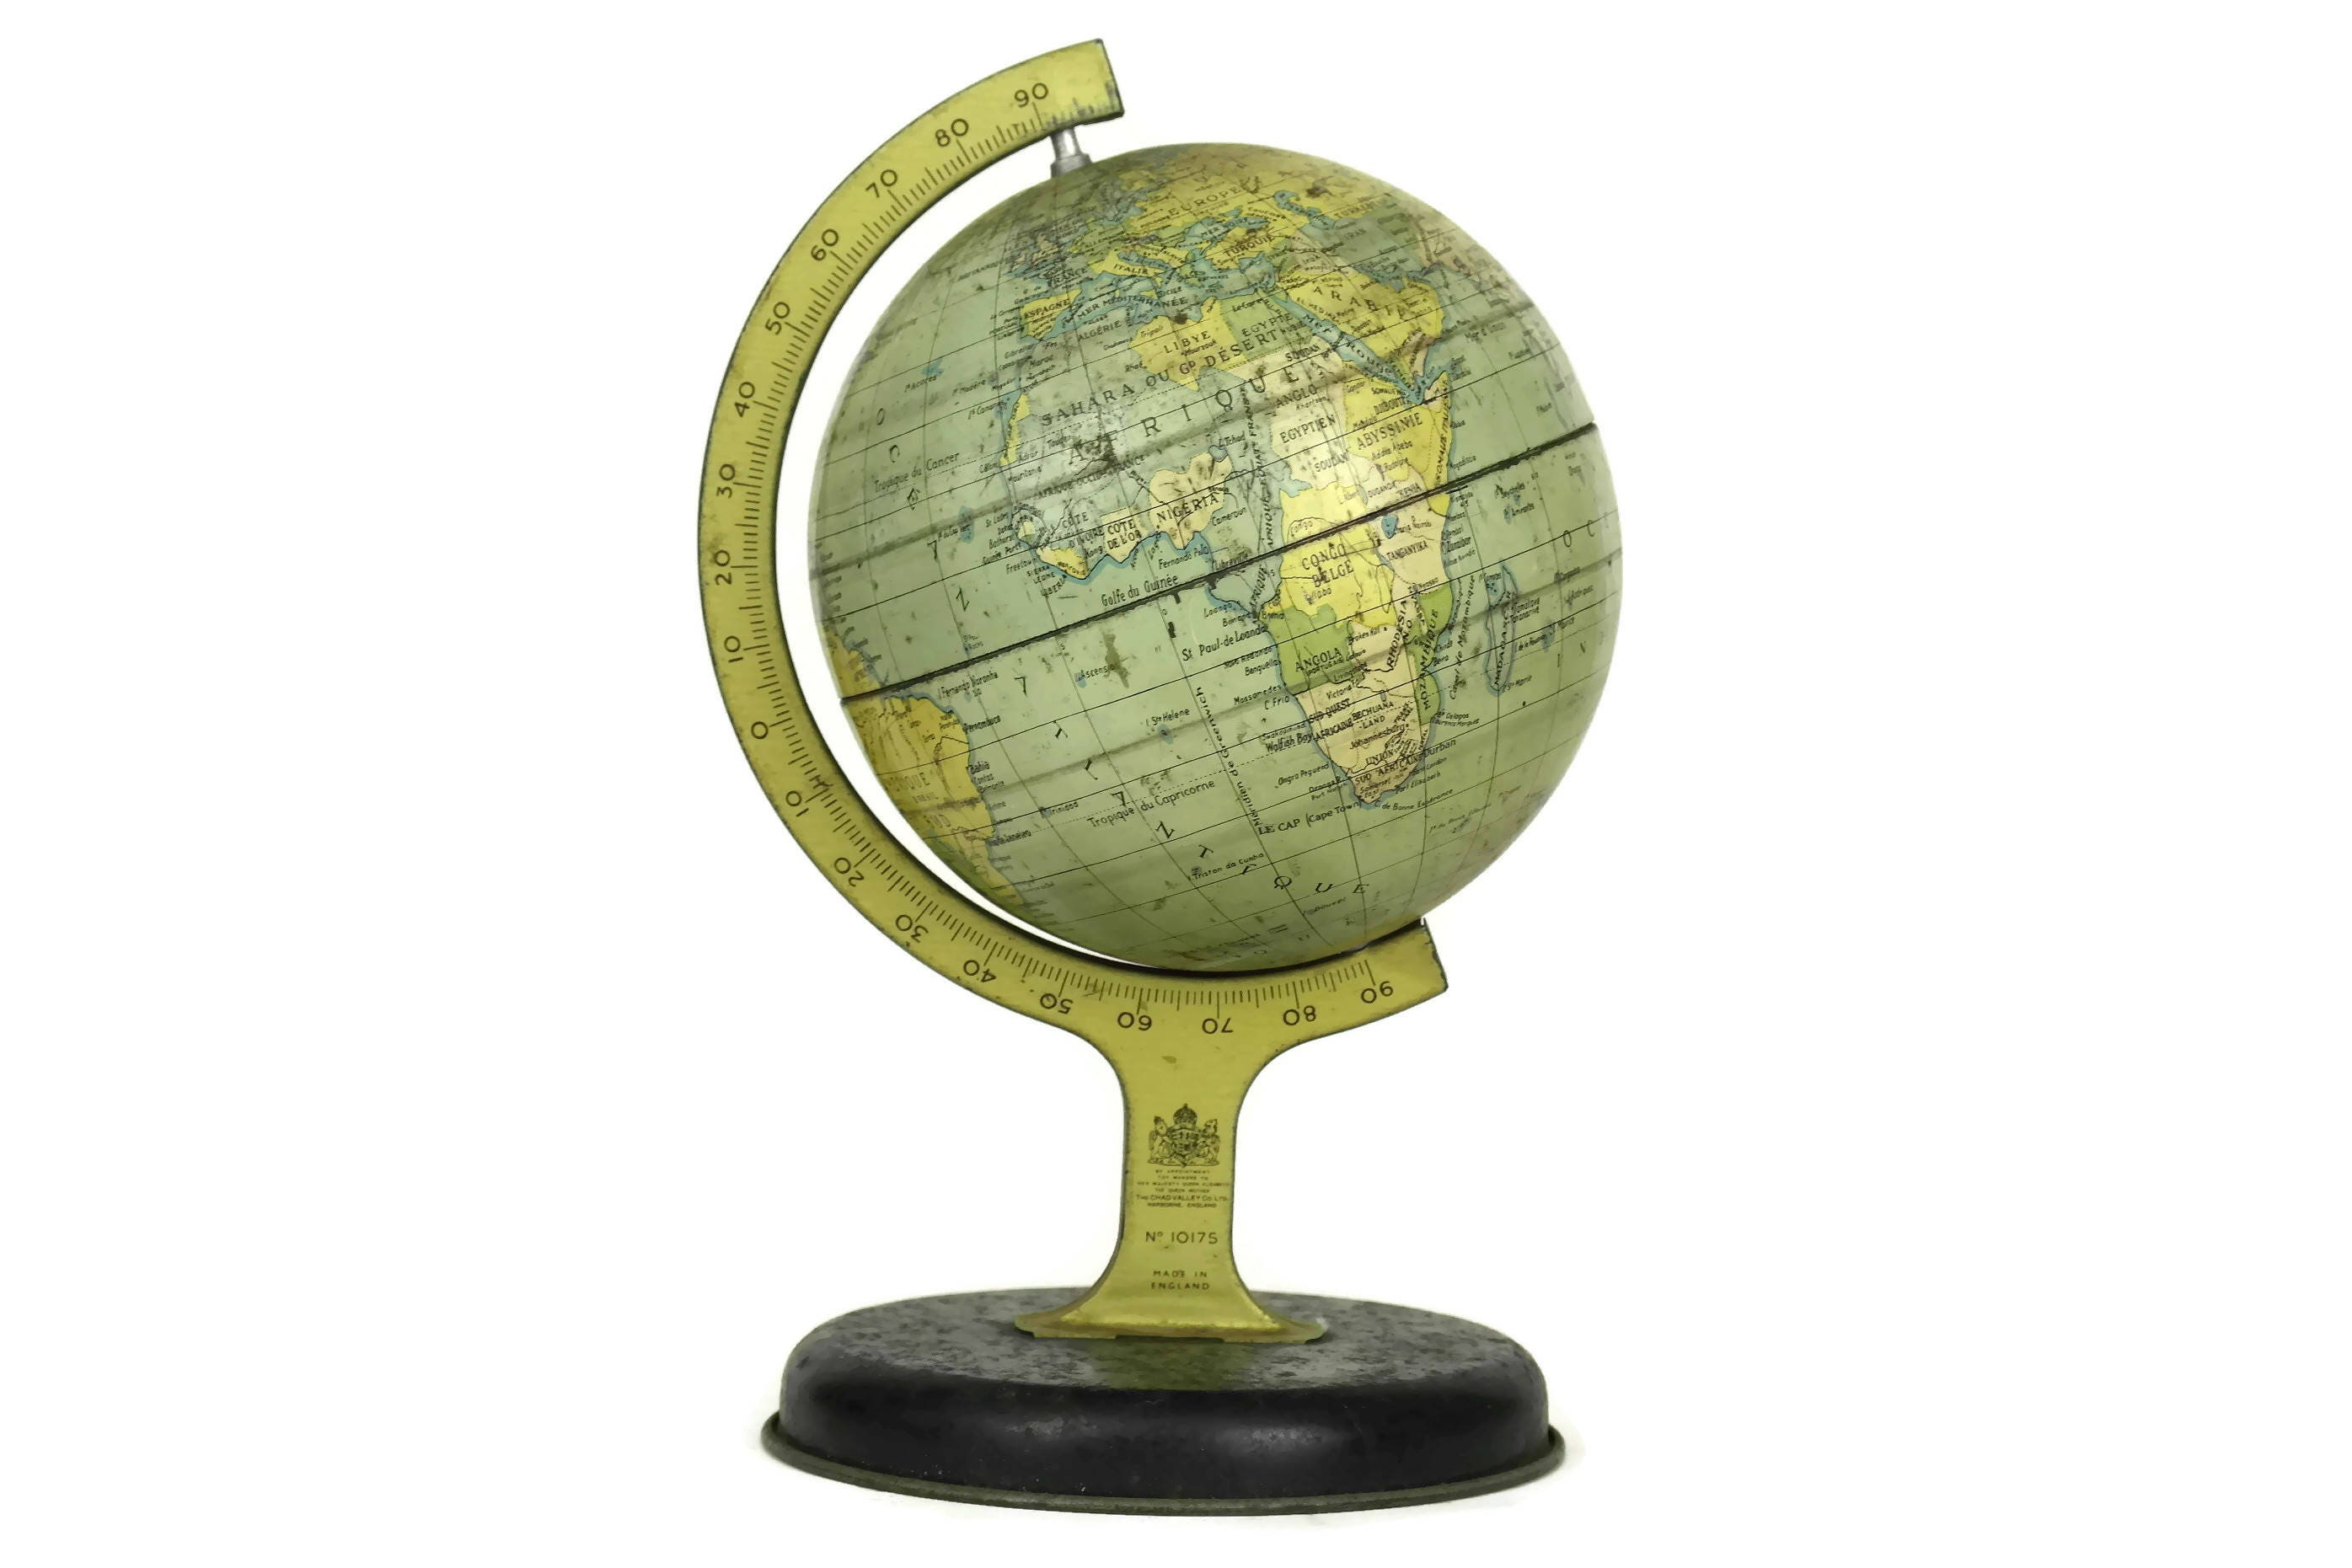 Vintage World Map Globe No. 10175 By Chad Valley, 1950u0027s Lithograph Tin  Earth Model, Office Desk Decor